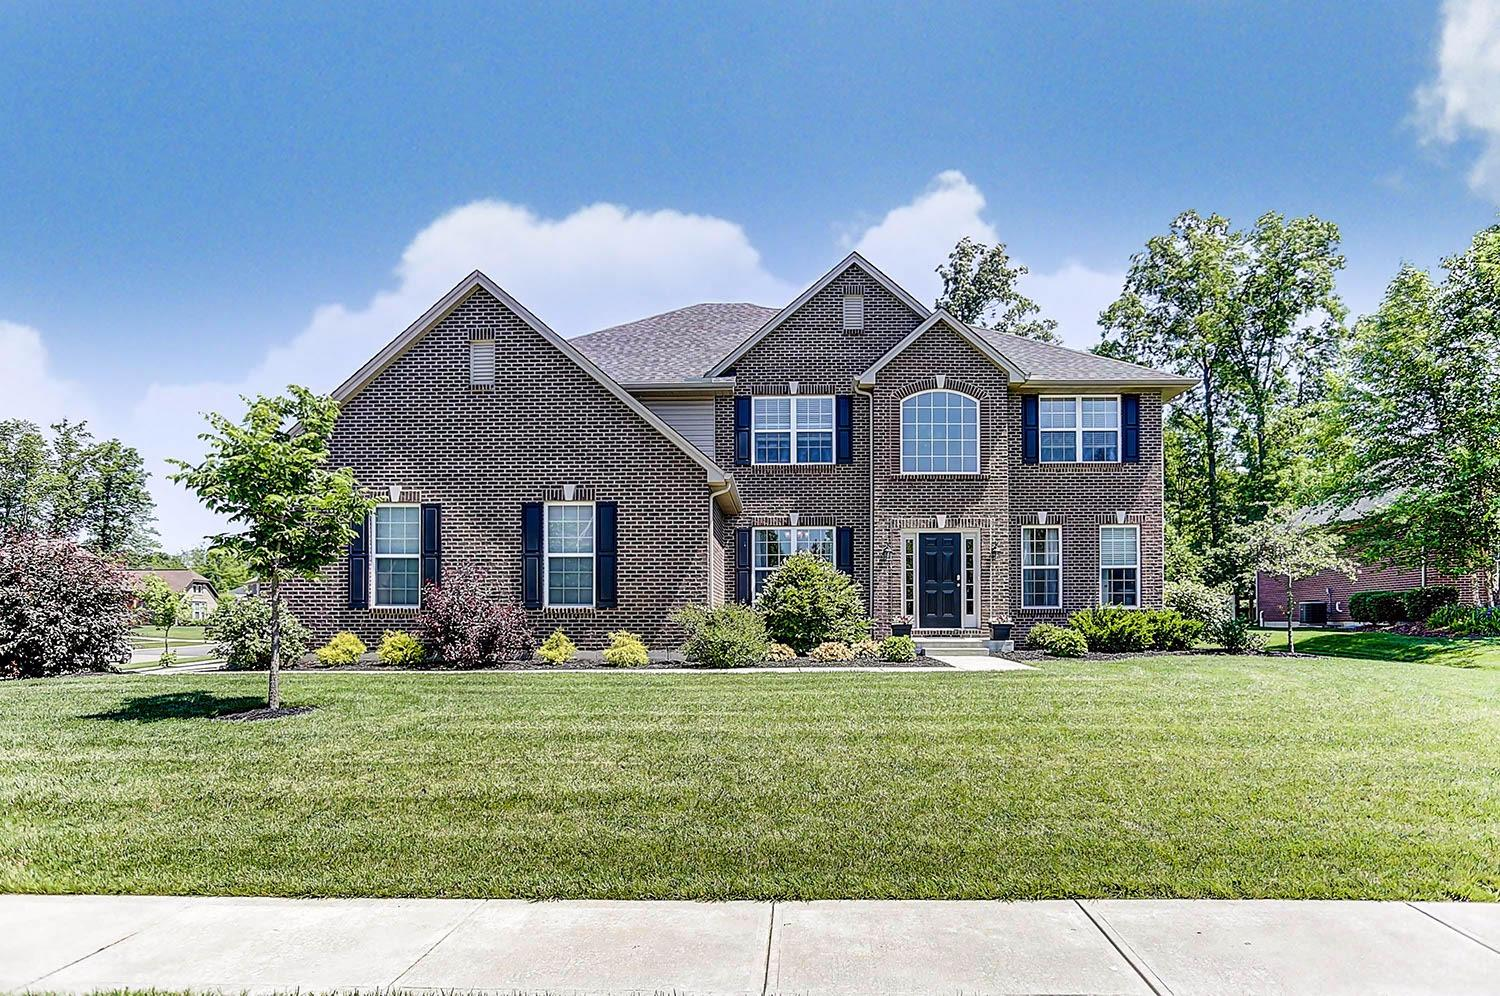 100 Timber Cove, Loveland, OH 45140